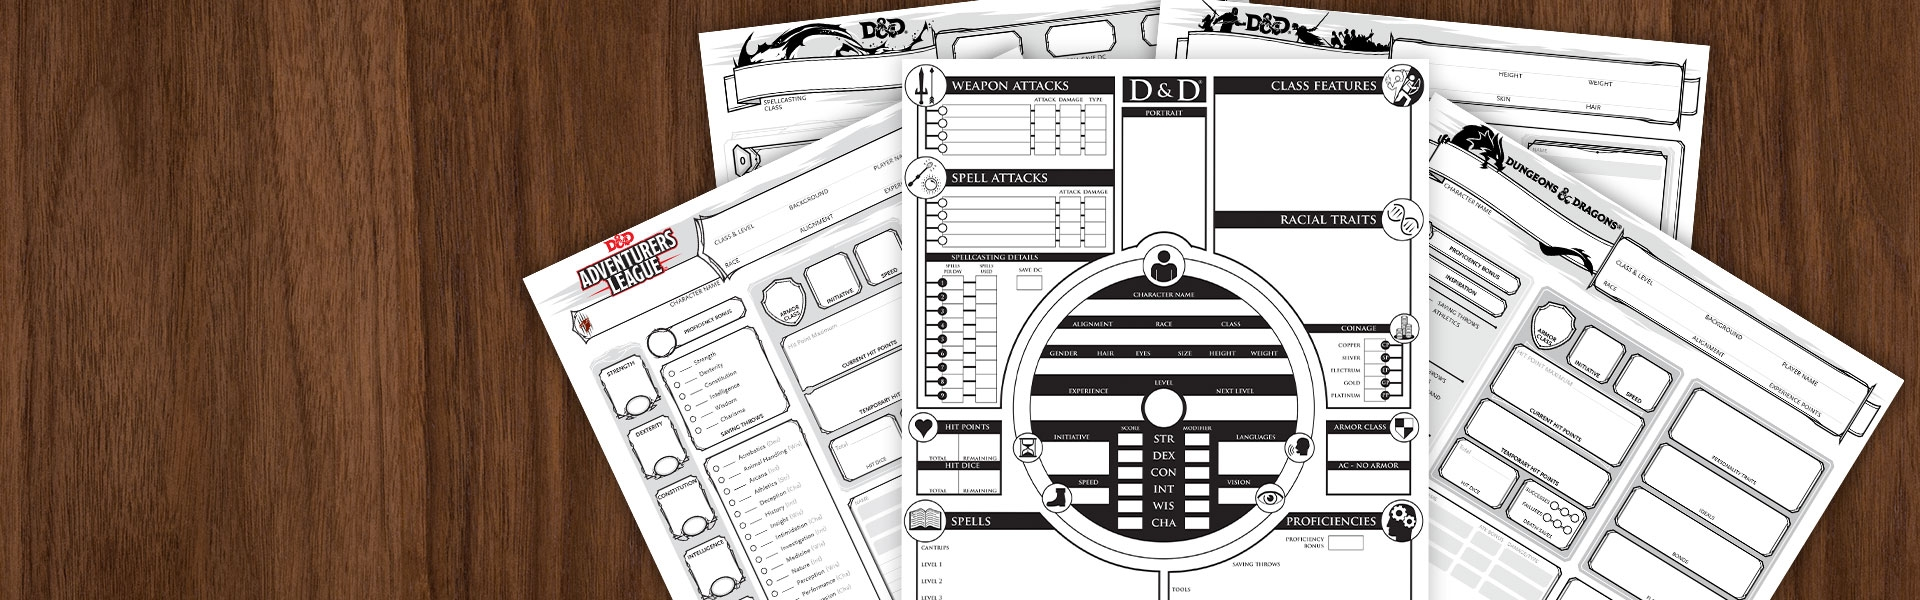 Template Printable Dnd Character Sheet Pdf